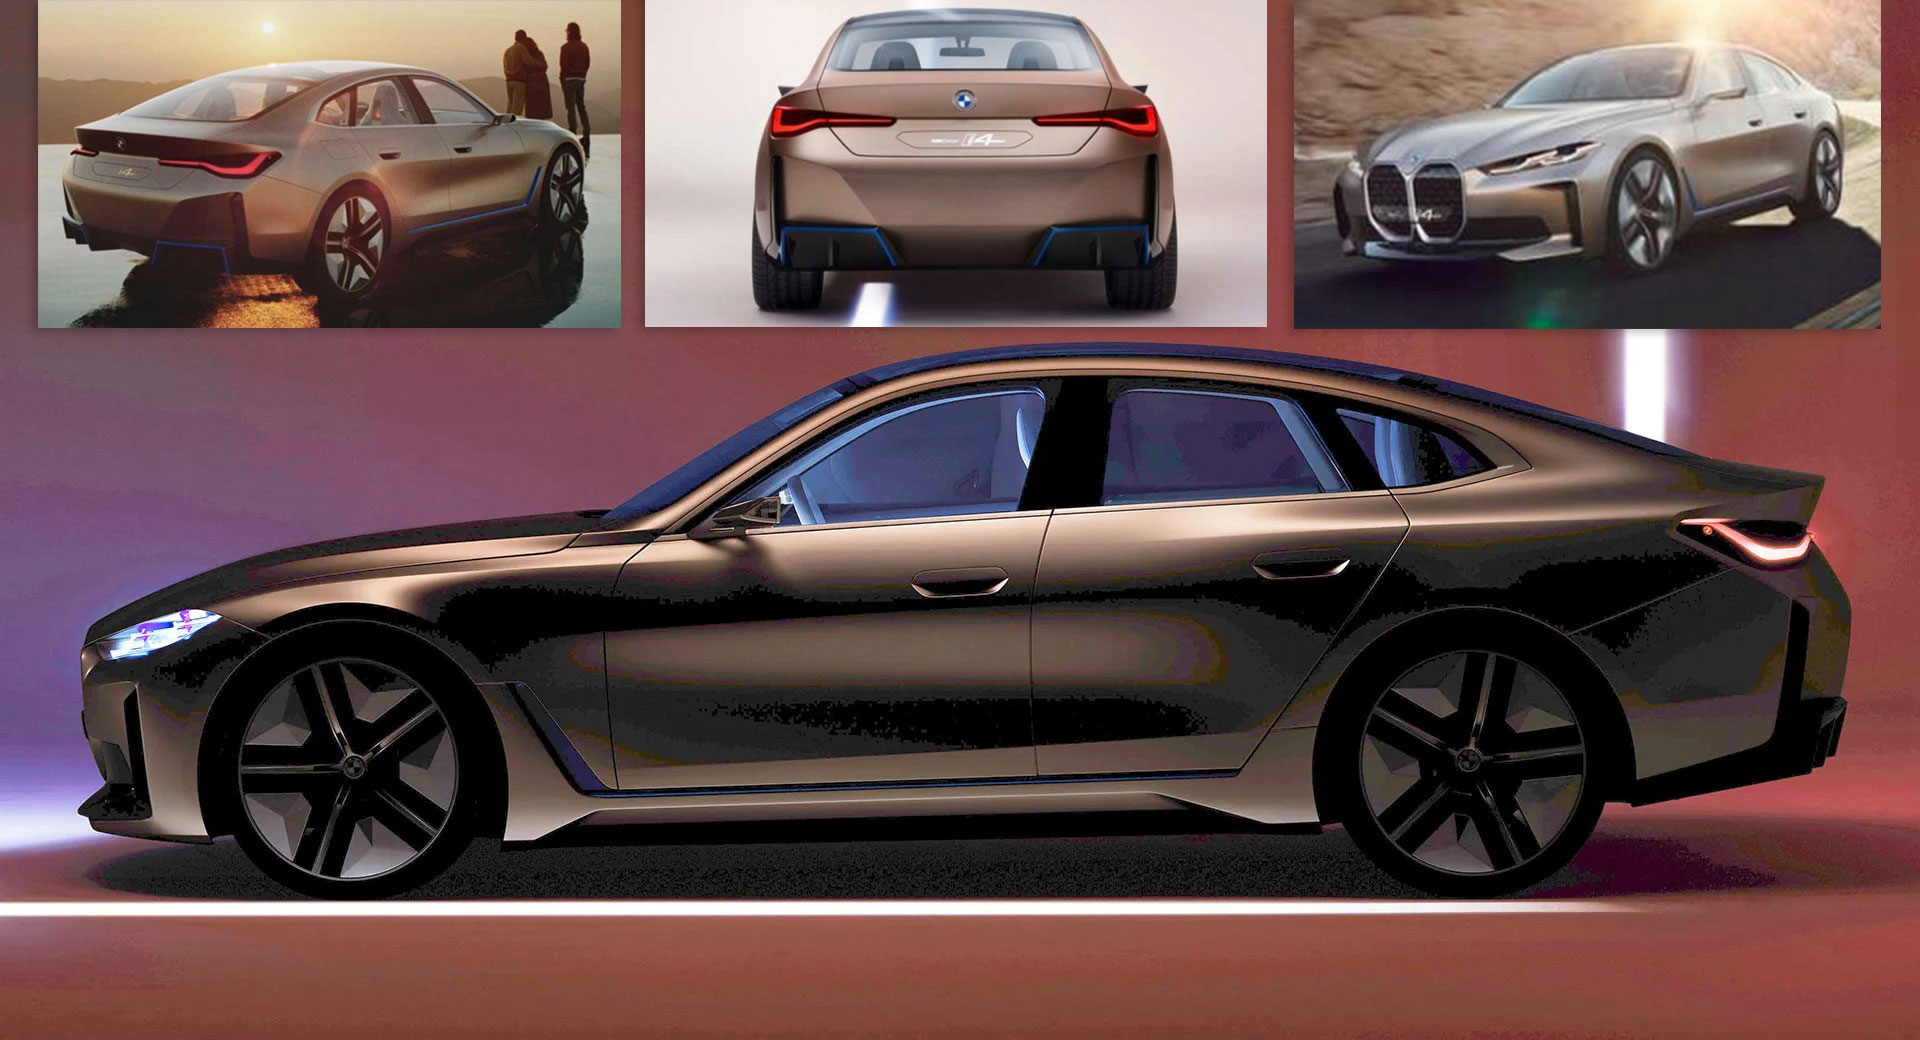 bmw u0026 39 s concept i4 is one step before production  new photos